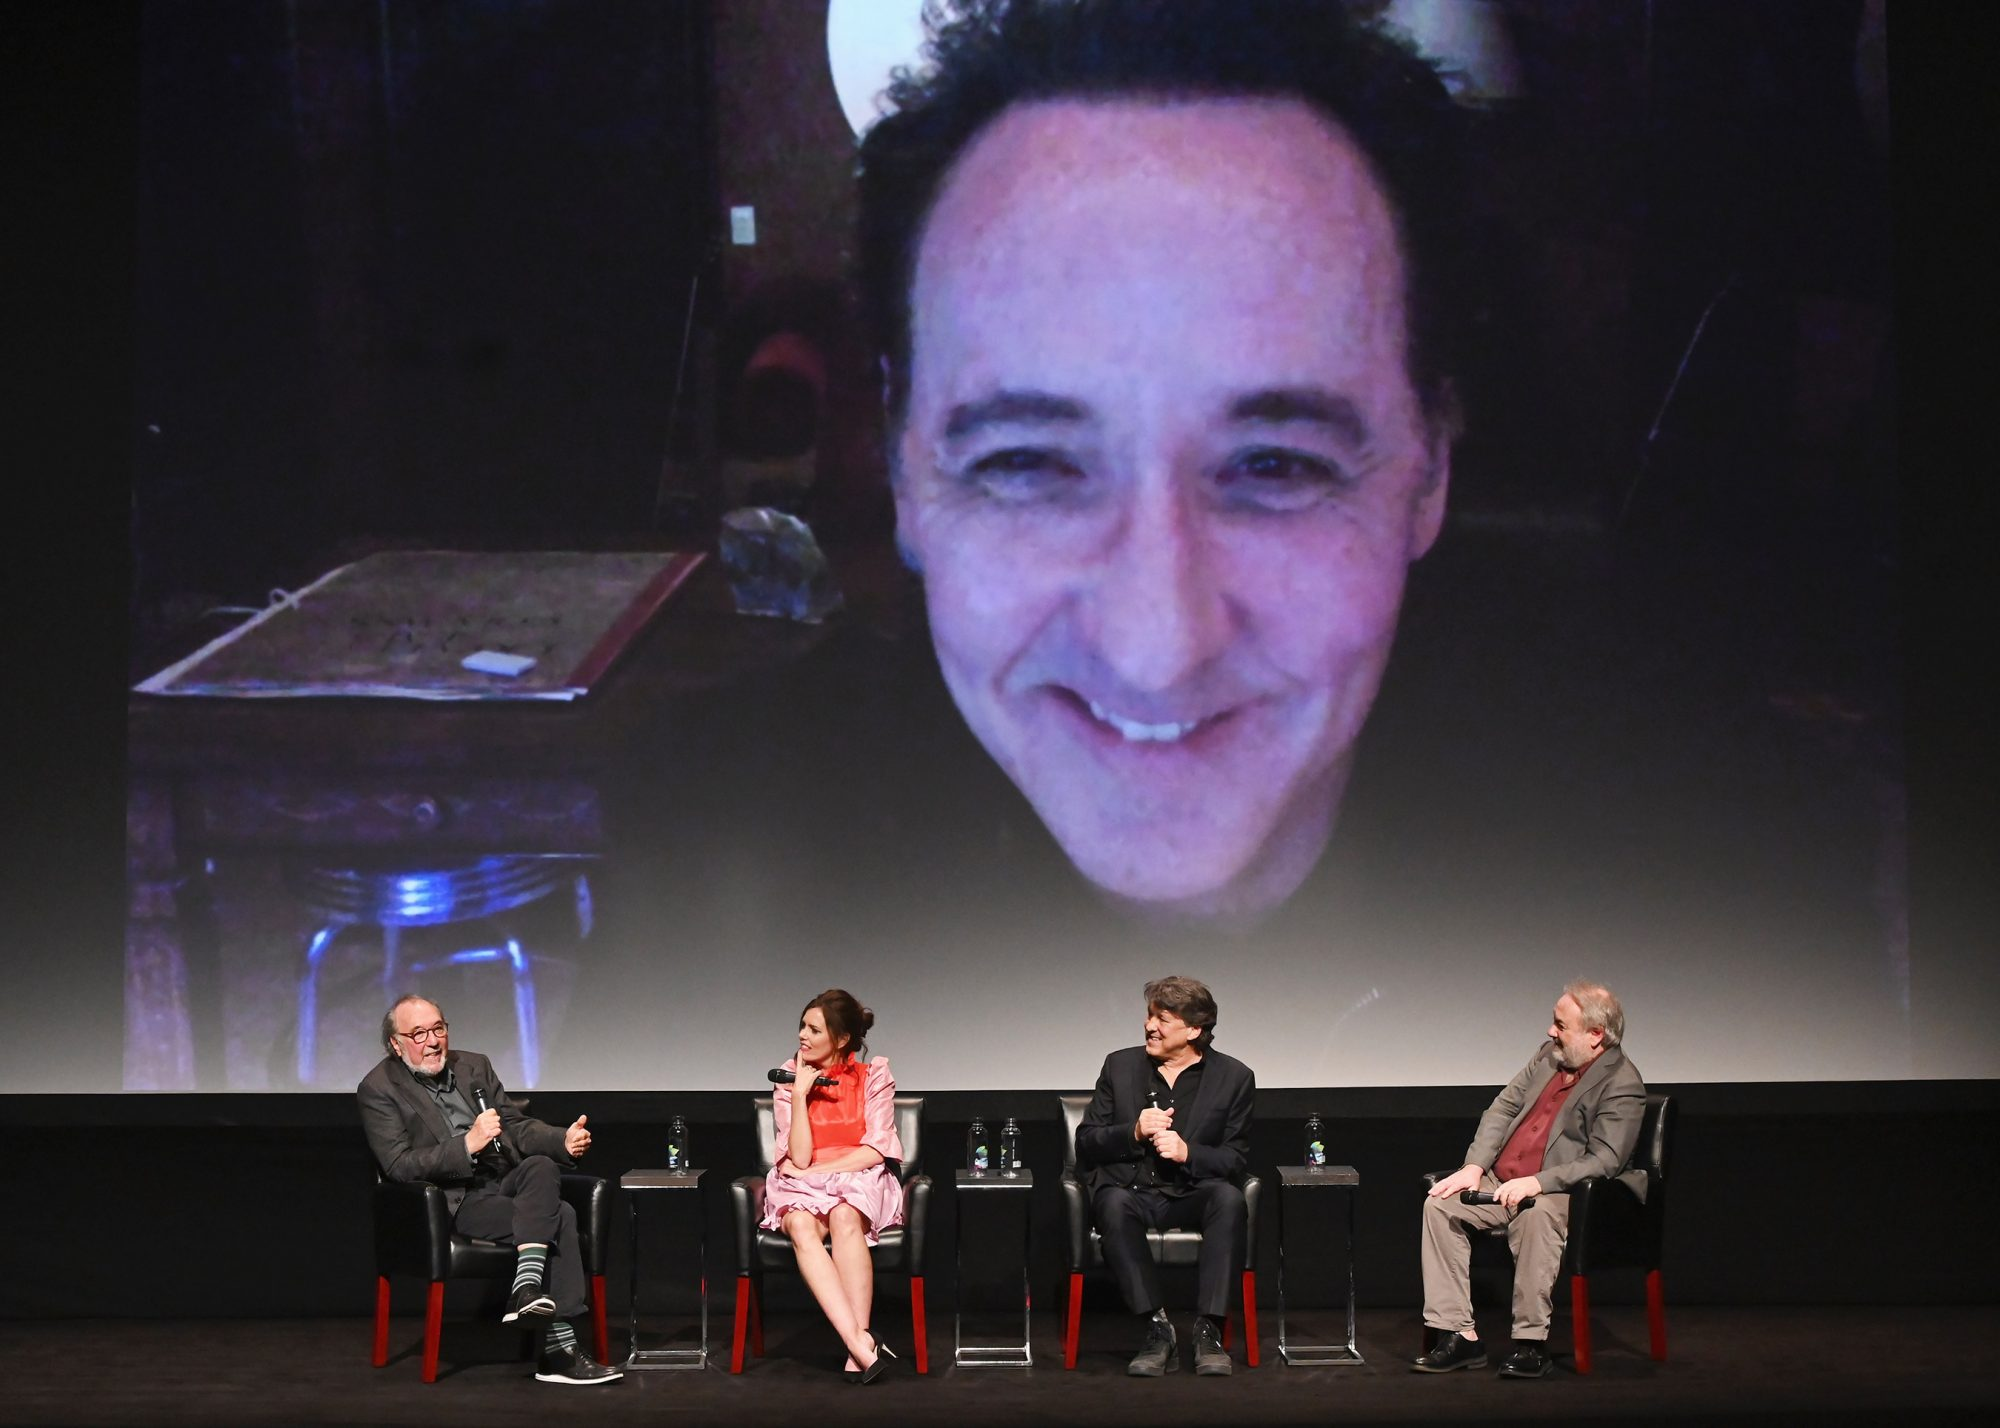 """NEW YORK, NEW YORK - APRIL 30: A live skype feed with, John Cusack, Executive Producer James L. Brooks, Ione Skye, Director Cameron Crowe and moderator David Edelstein speak at the screening of """"Say Anything..."""" 30th Anniversary - 2019 Tribeca Film Festival at BMCC Tribeca PAC on April 30, 2019 in New York City. (Photo by Nicholas Hunt/Getty Images for Tribeca Film Festival)"""